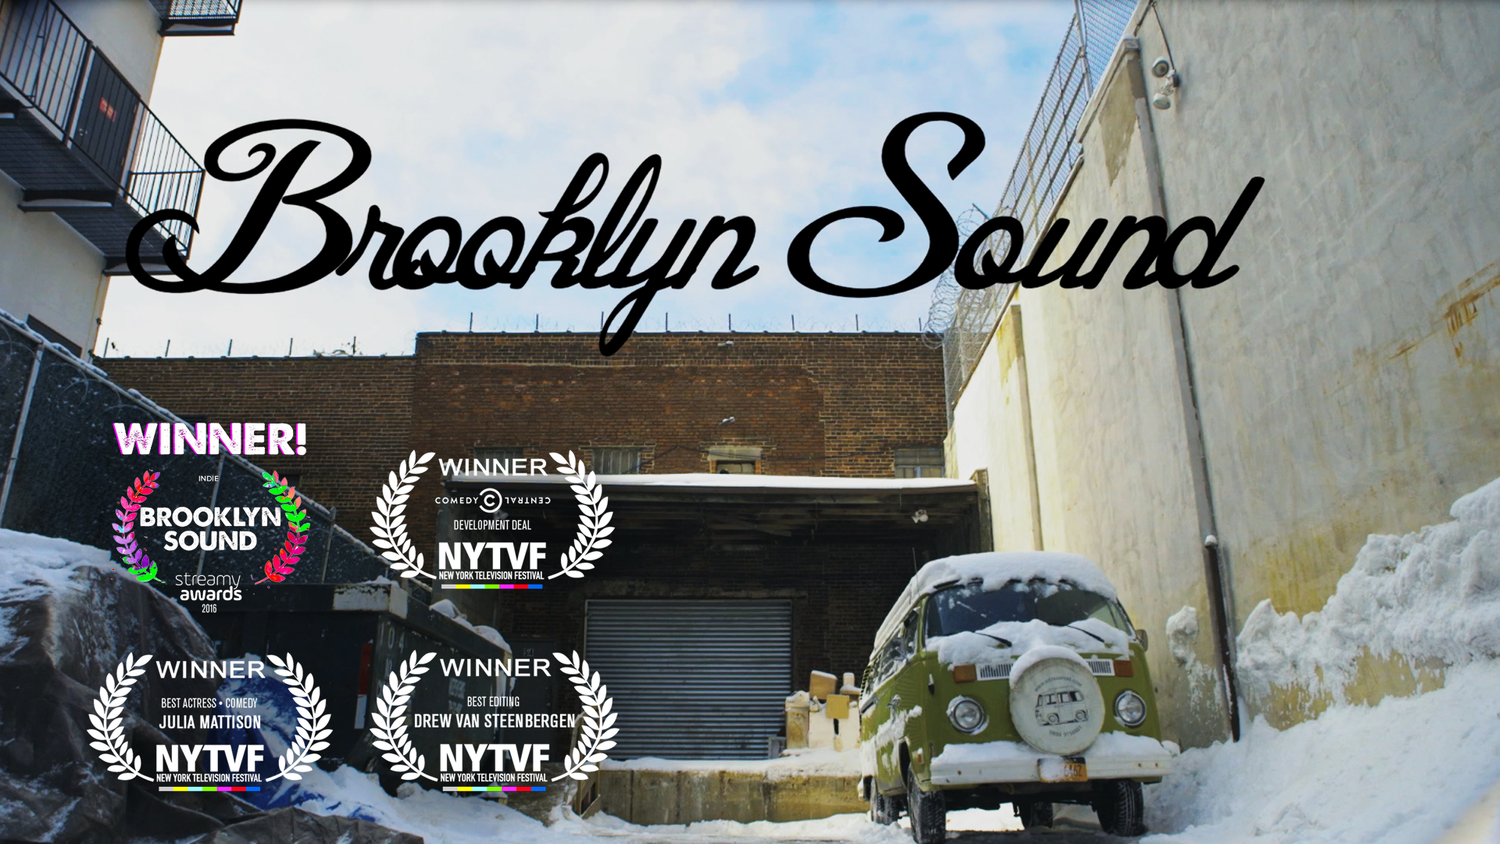 Brooklyn Sound Named One of 'Tubefilter's Top 5 Indie Series of 2016' - Brooklyn Sound was included as one of Tubefilter's Top 5 indie series of 2016! Check it out here, and visit the press section for more recent articles on the series.